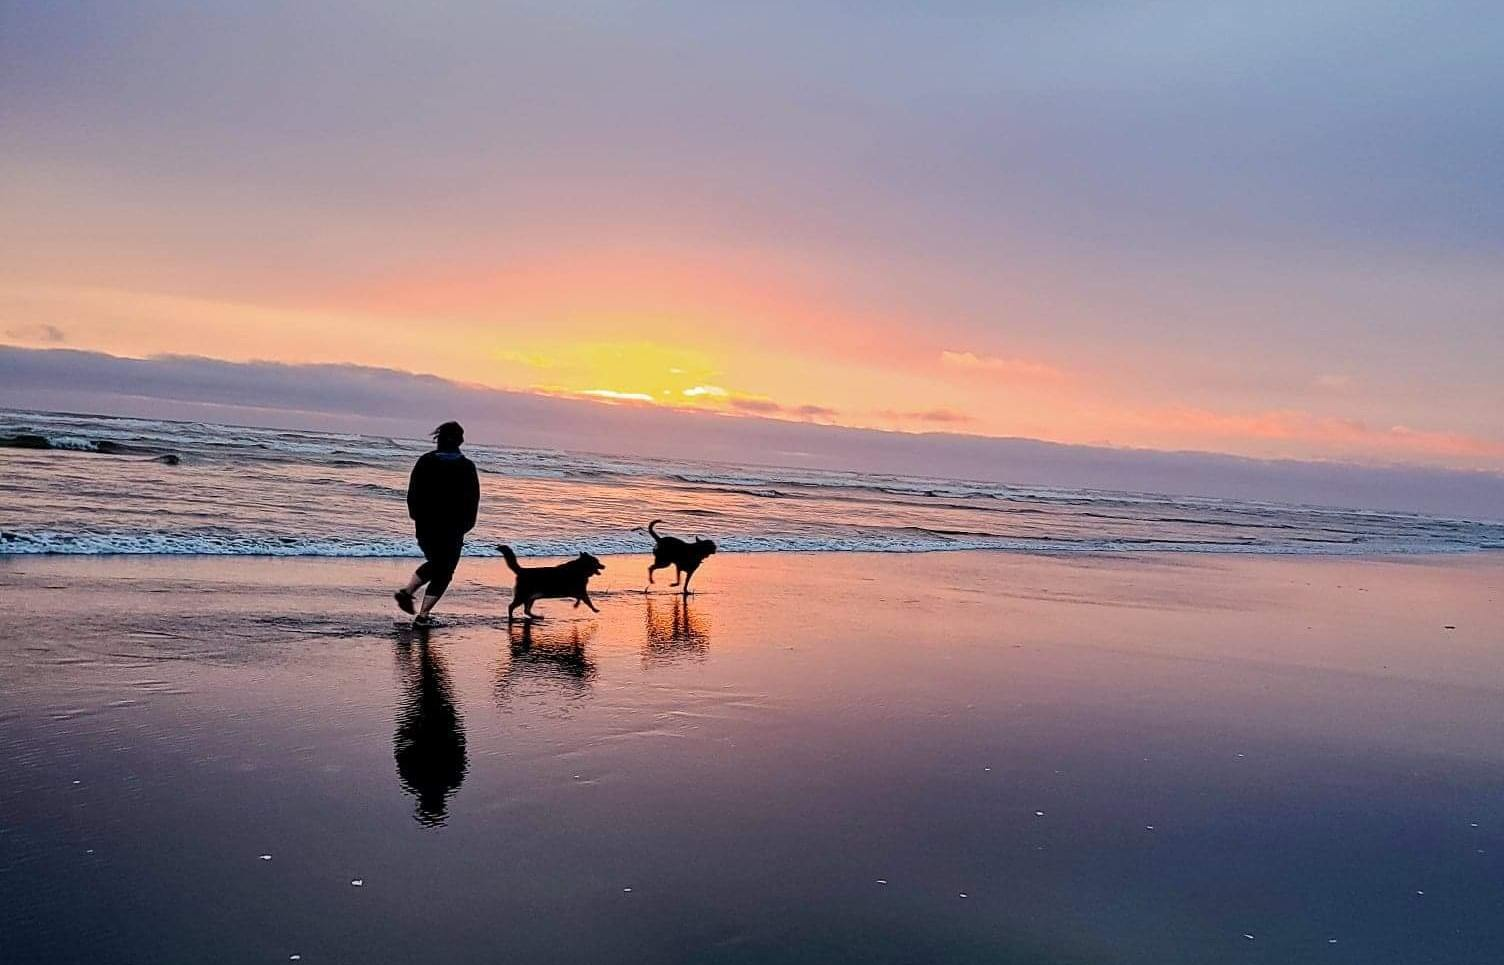 Ranada running on the beach with her two dogs at sunset